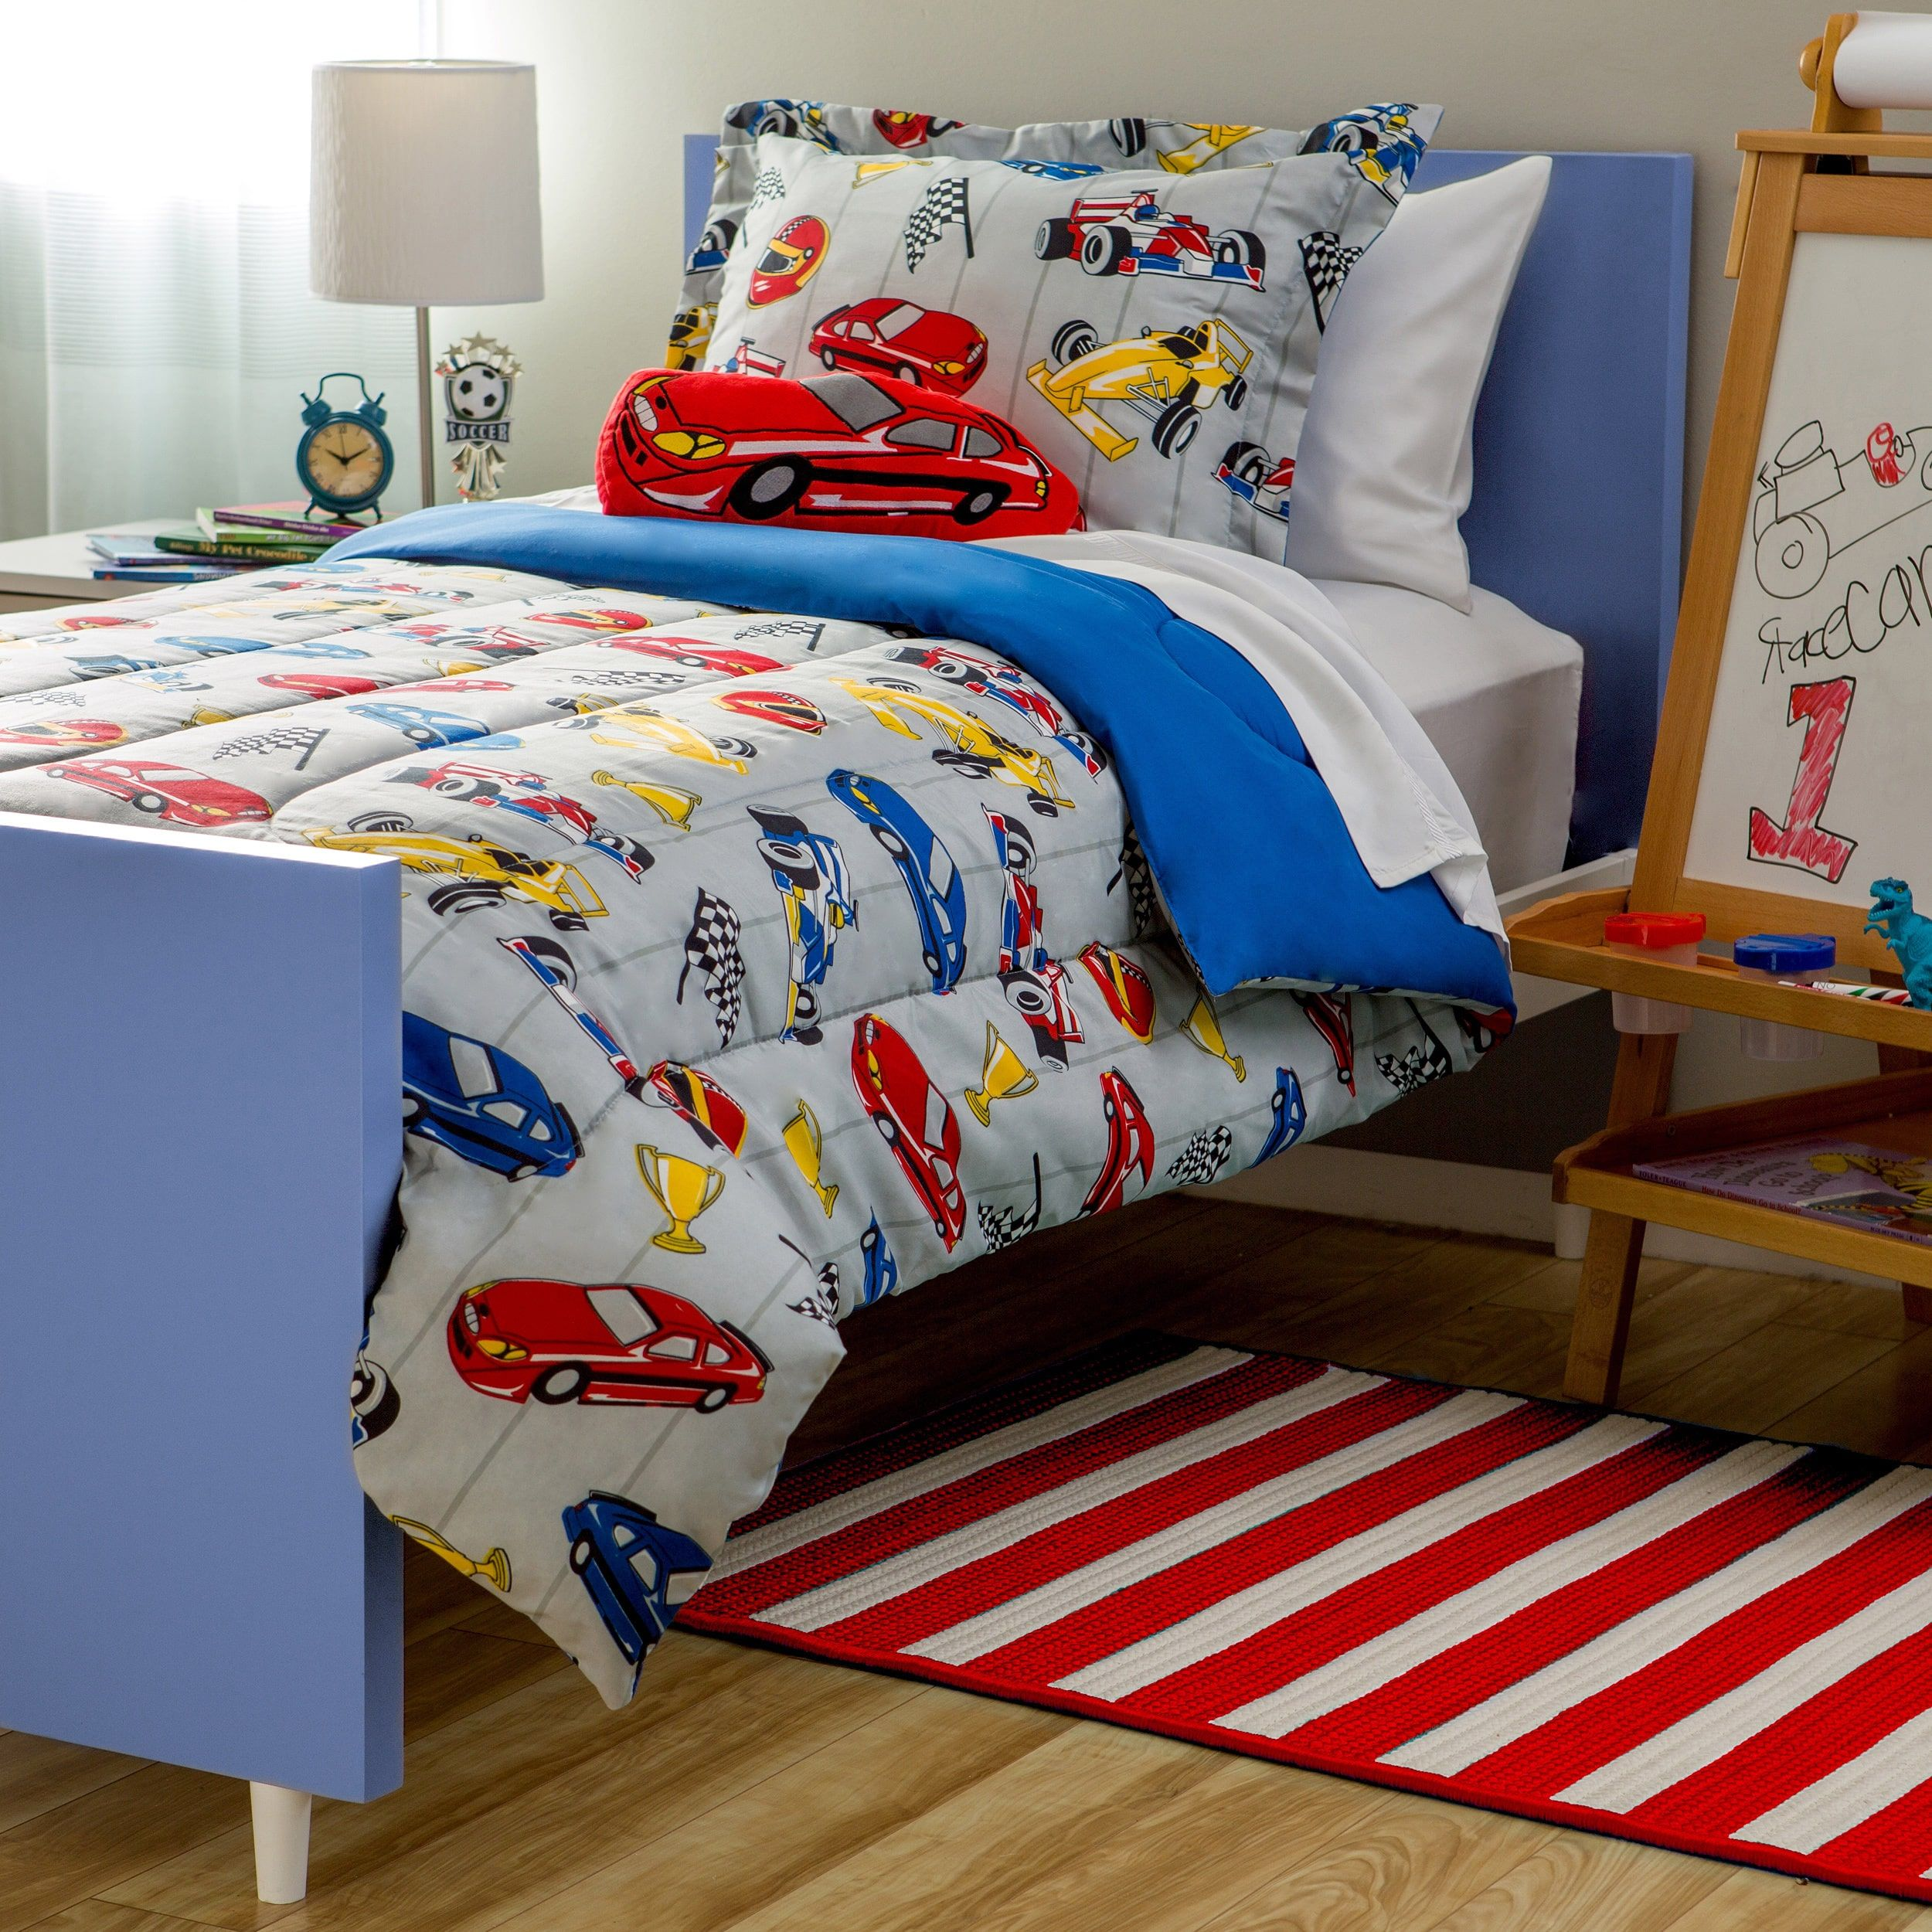 cotton boy bedspreads kmart california for queen master boys teen comforter extraordinary turquoise cheap lime purple gray on bedding and khaki sears size ivory grey bedroom set comforters image captivating target white king green sets twin clearance blue your xl full sheets decor